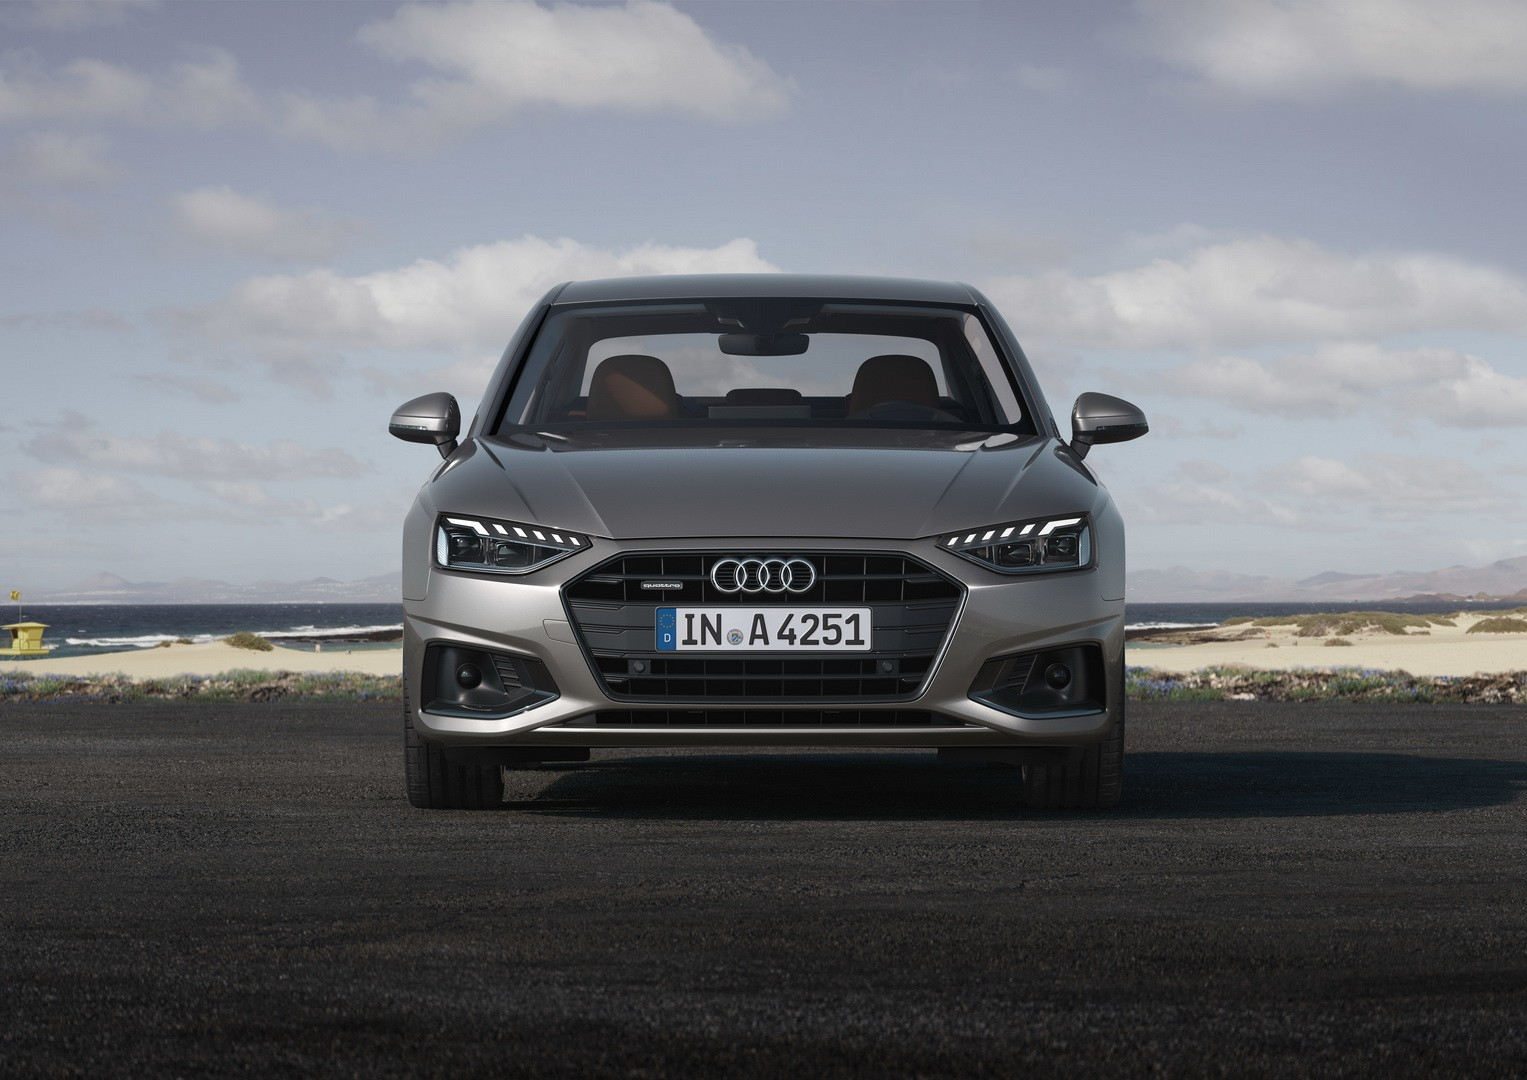 all-new-2023-audi-a4-wont-go-full-ev-just-yet-will-stick-with-gasoline-and-diesel-power_5.jpg